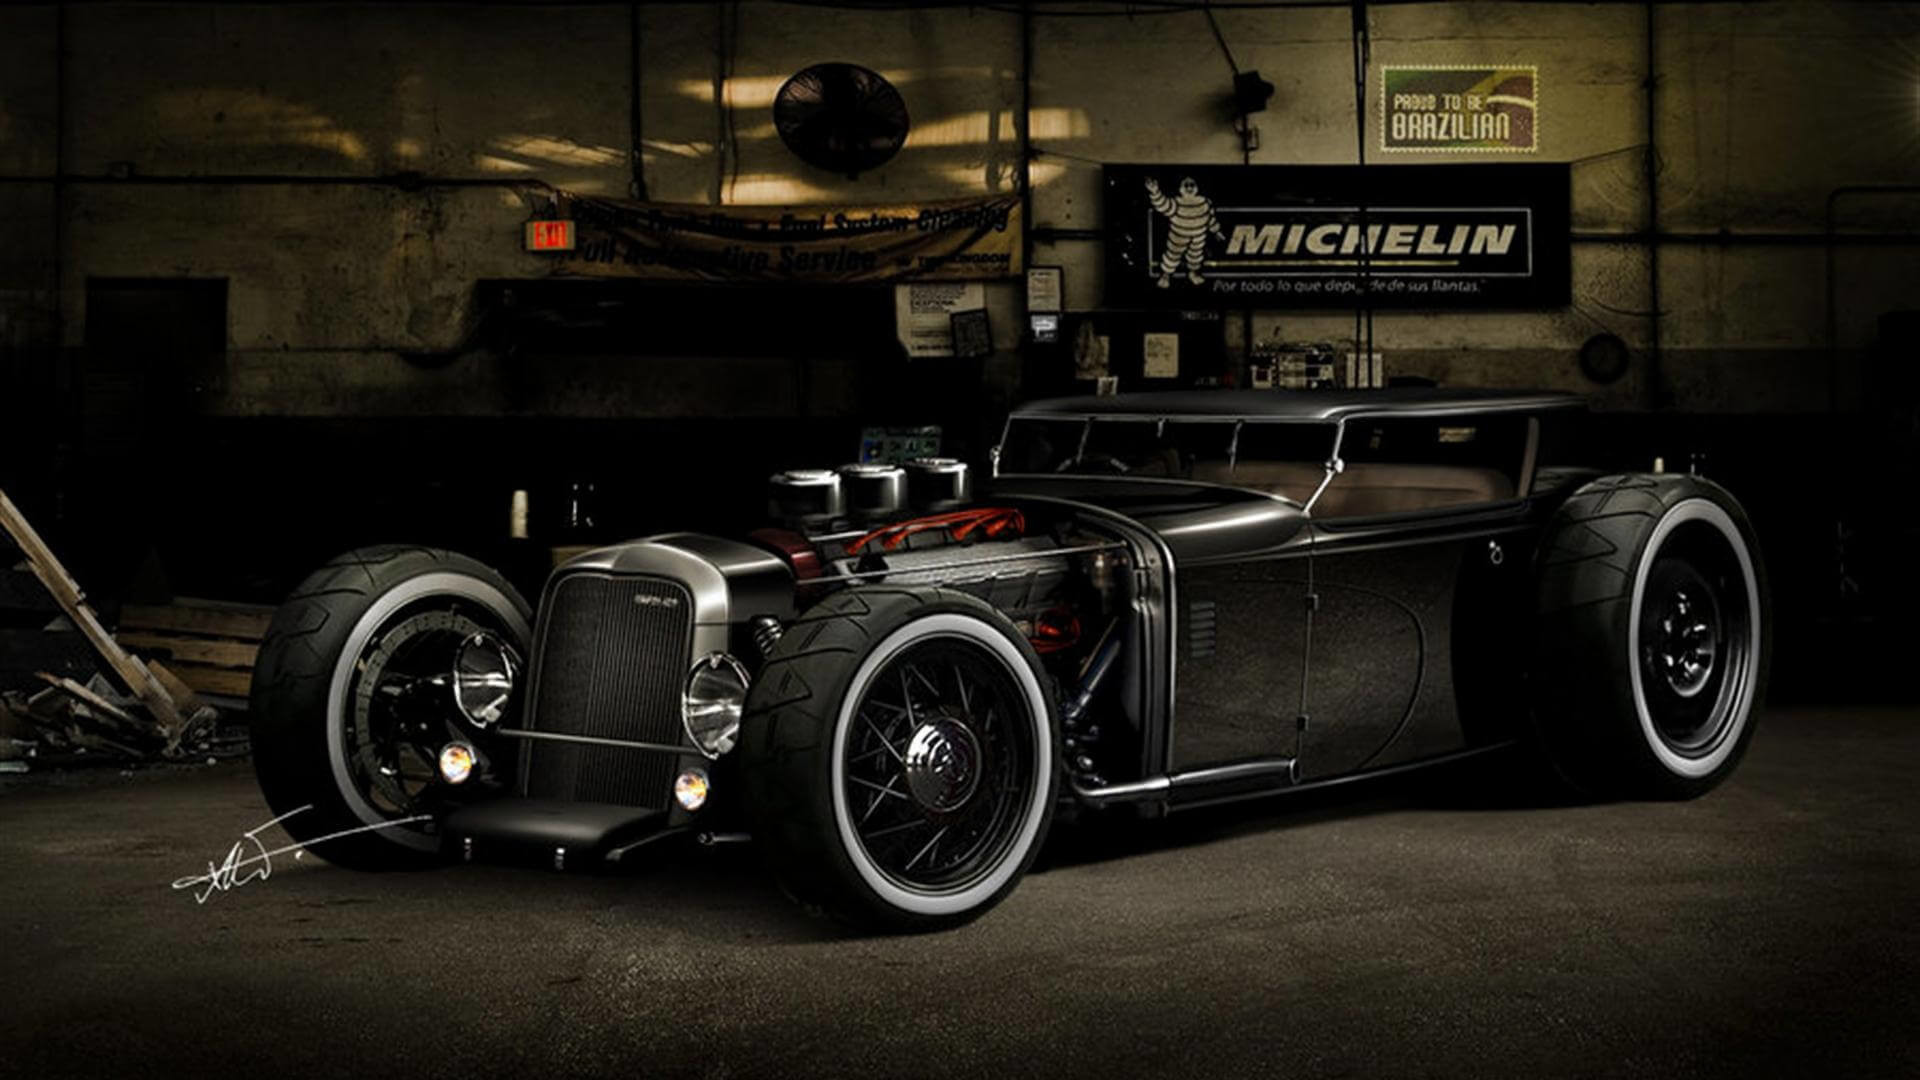 Res: 1920x1080, Vintage Car Wallpapers 16 - 1920 X 1080